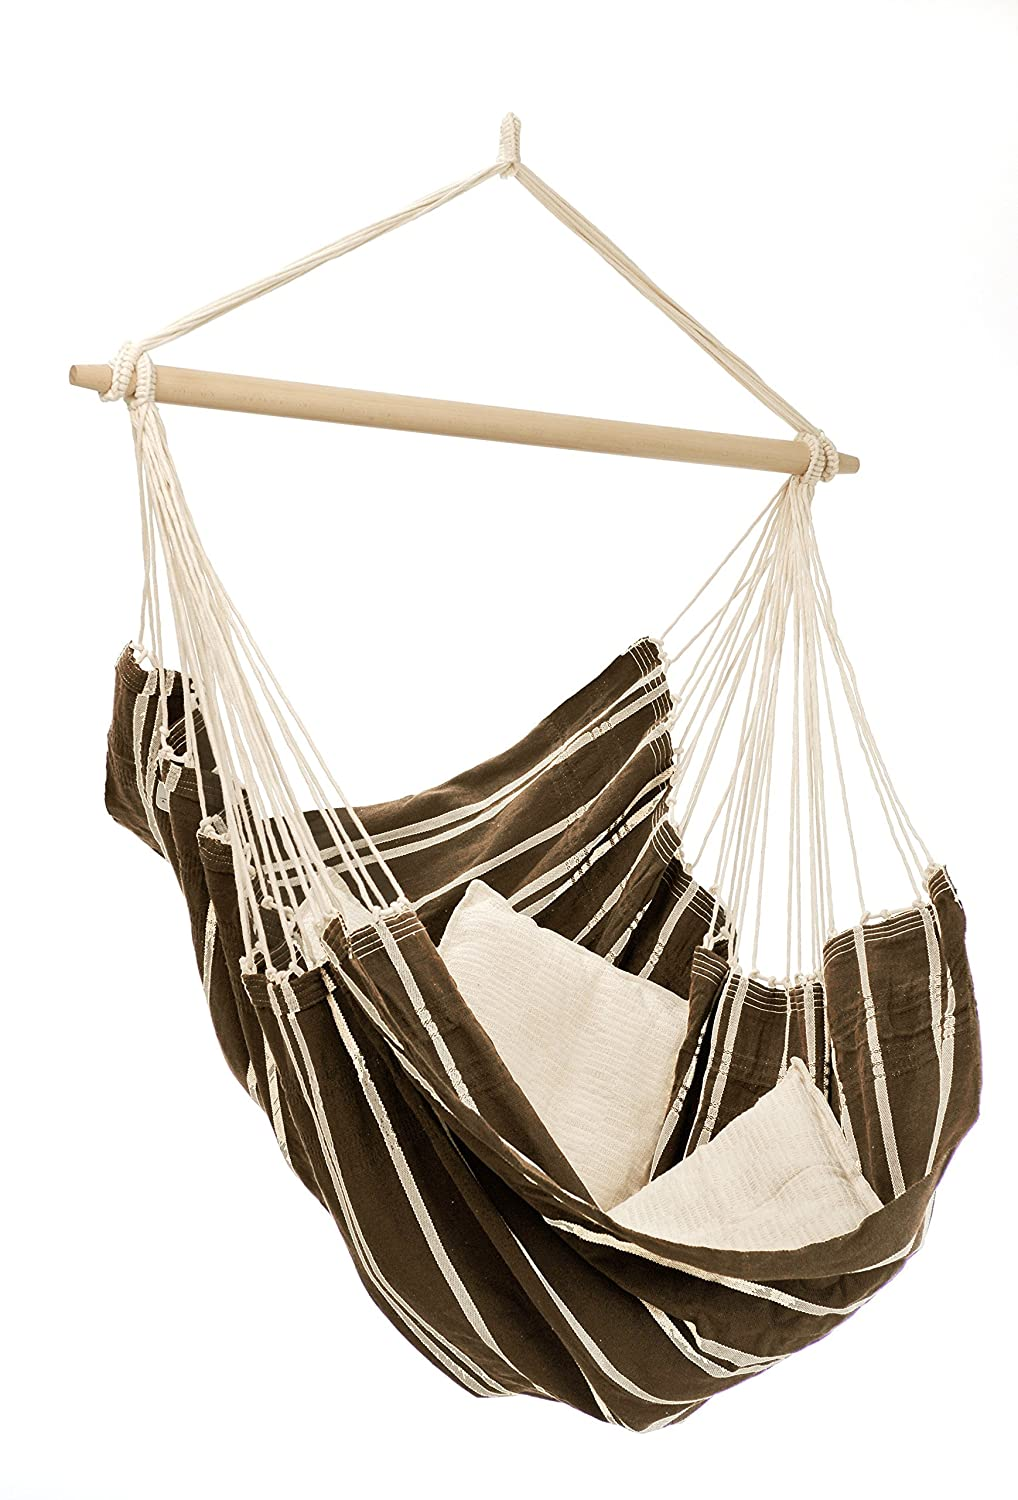 Hanging BRAZIL HAMMOCK CHAIR, Mocha, by Byer of Maine